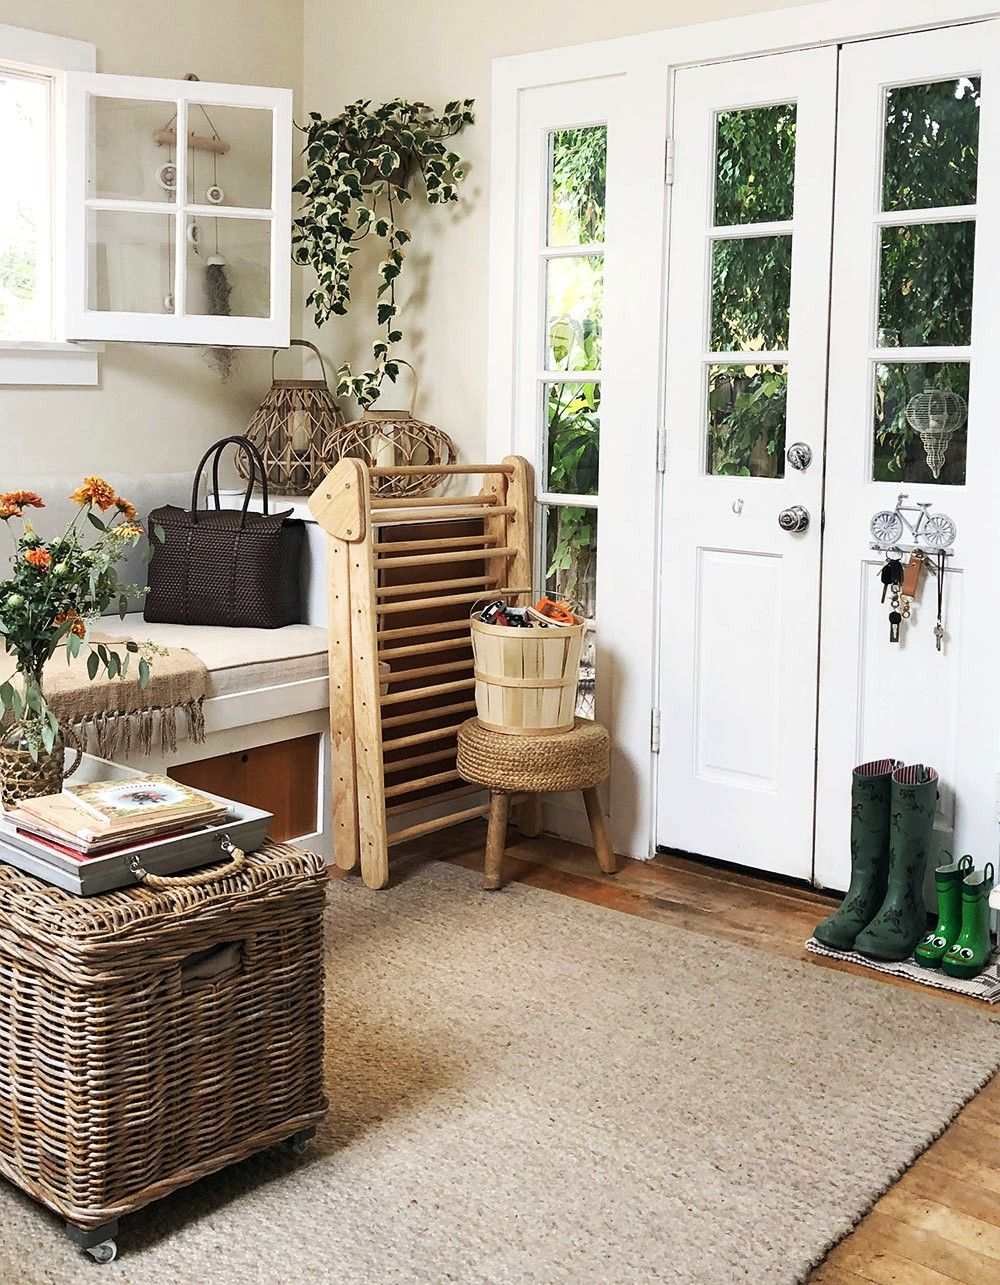 Small Space Baby Essentials  The Tiny Canal Cottage Our Small Space Baby Essentials  The Tiny Canal CottageSmall Kid Spaces Our Small Space Baby Essentials  The Tiny Cana...